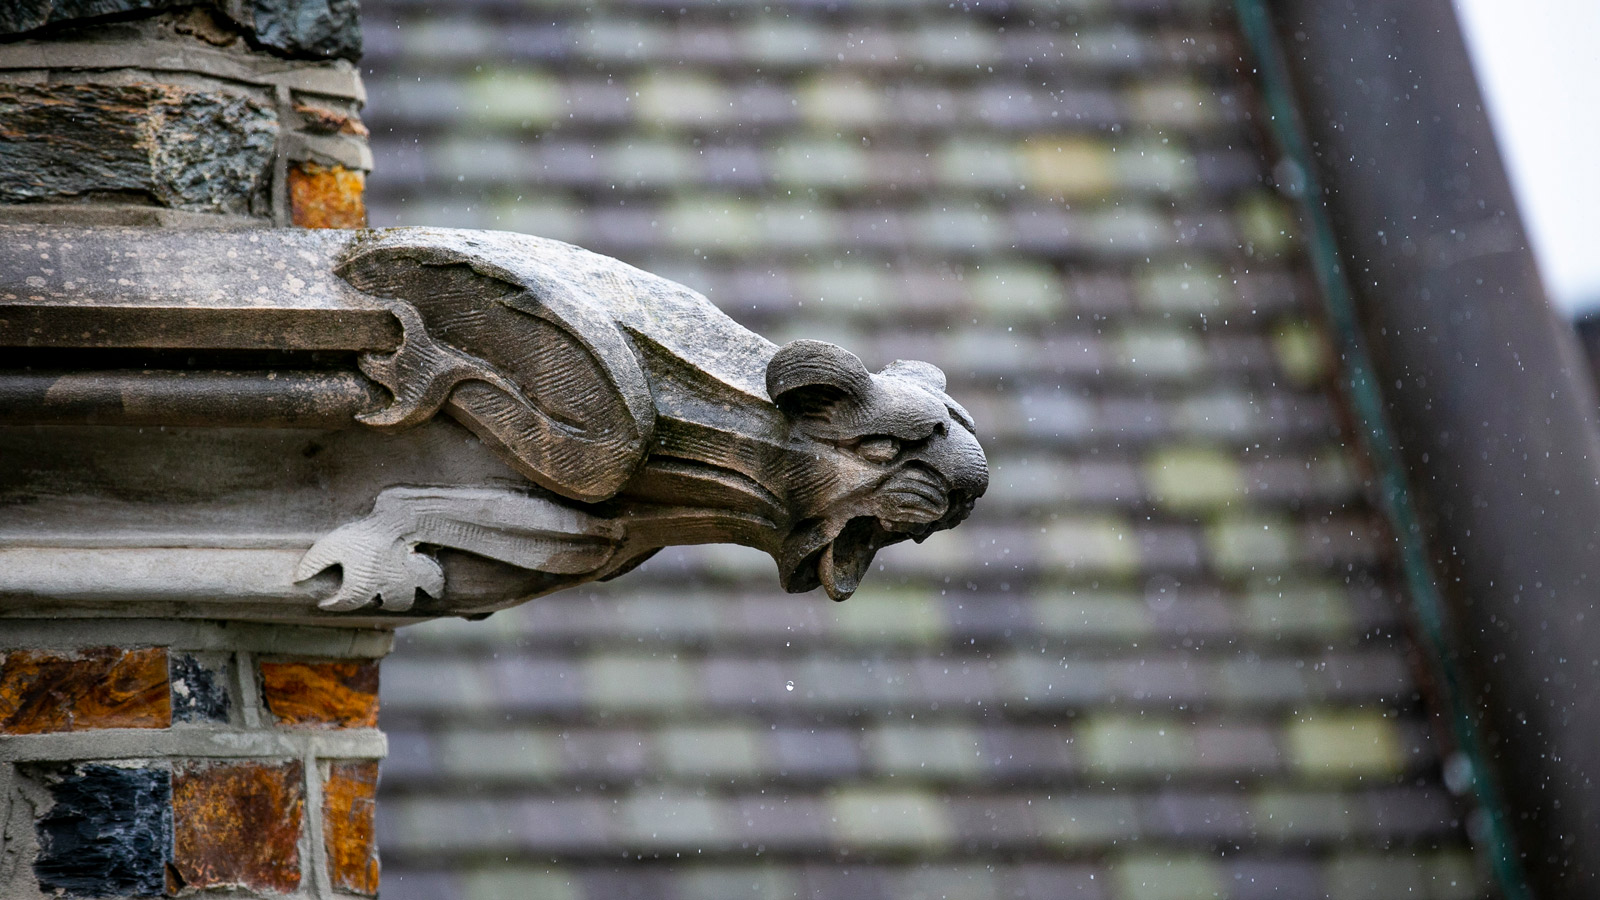 Image of gargoyle from Duke building